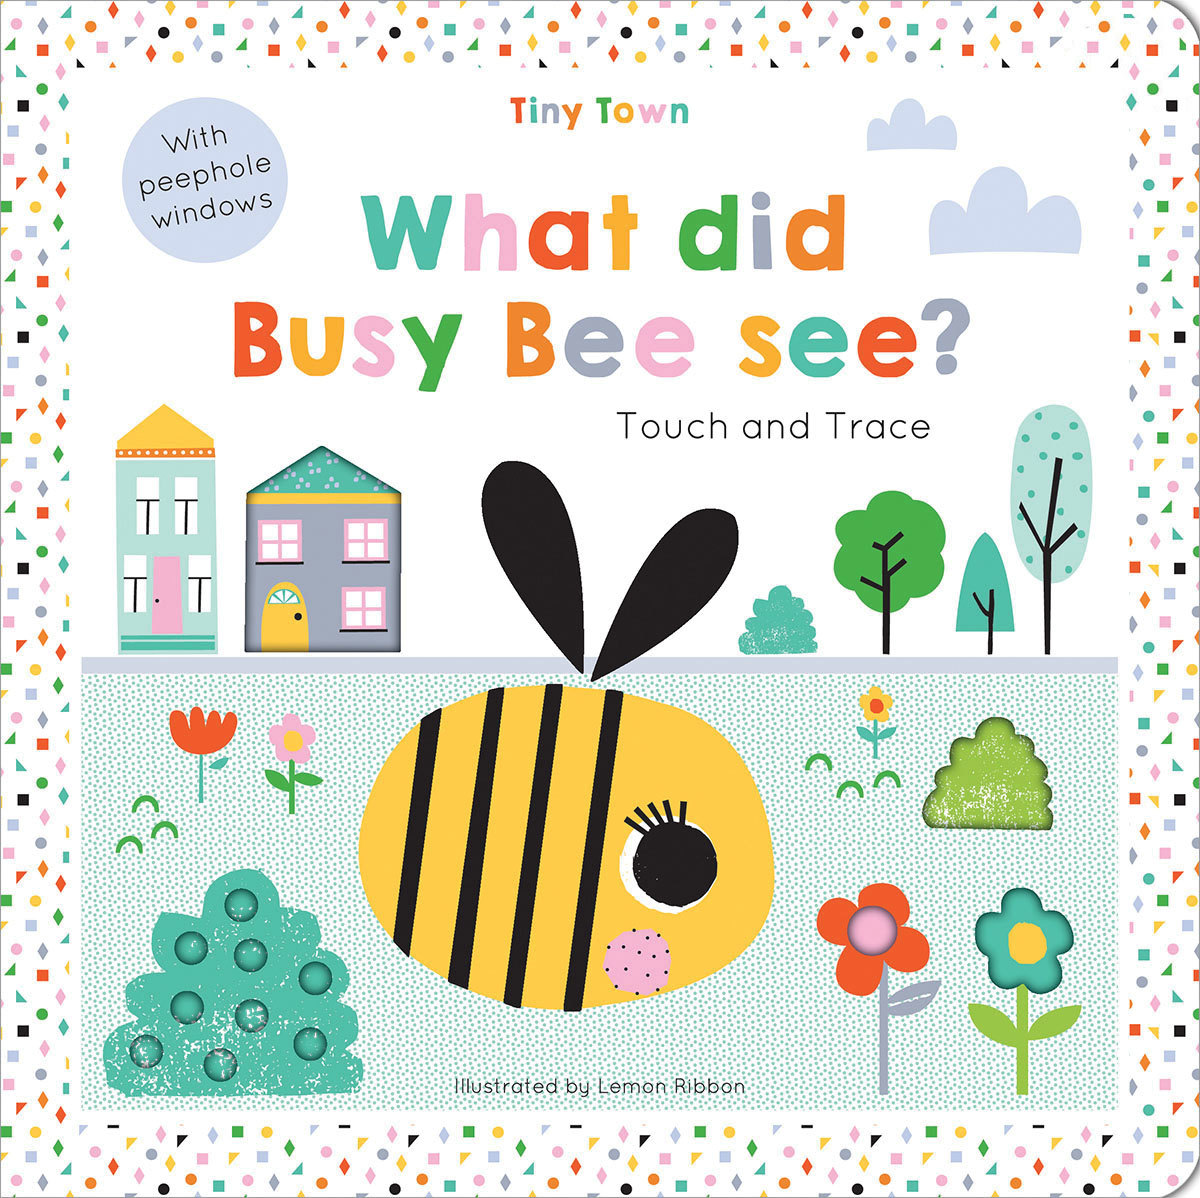 WHAT DID BUSY BEE SEE?